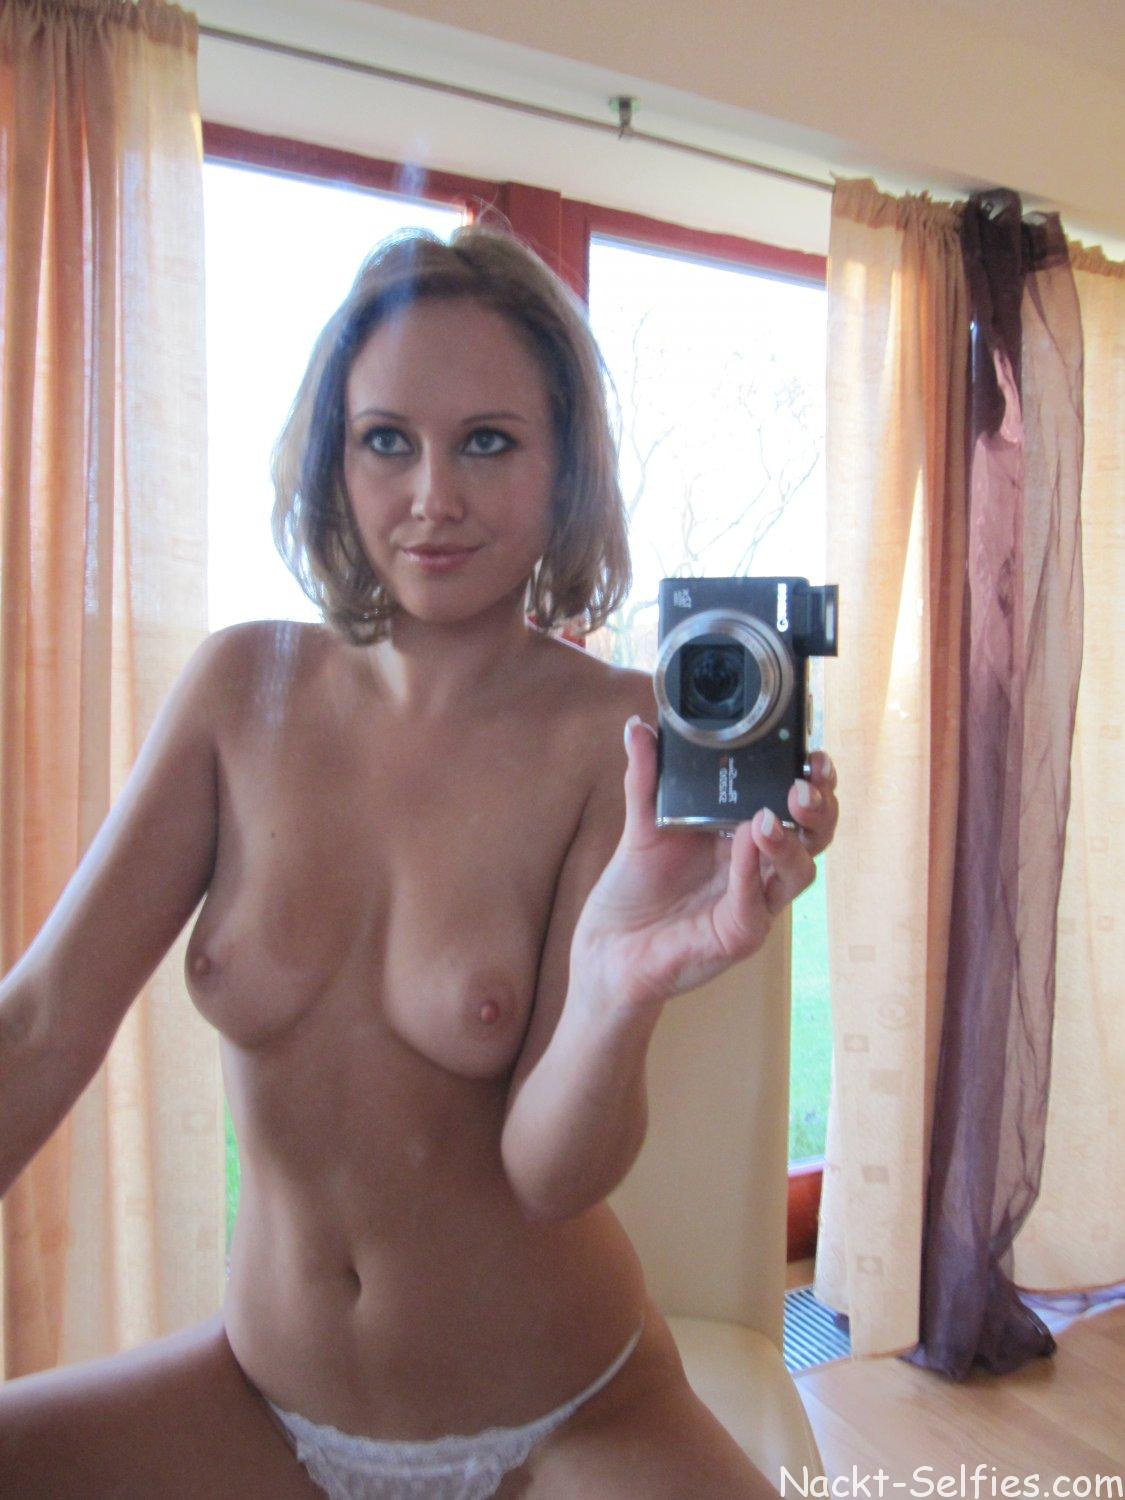 Privater Erotik Self Shot Ella 03